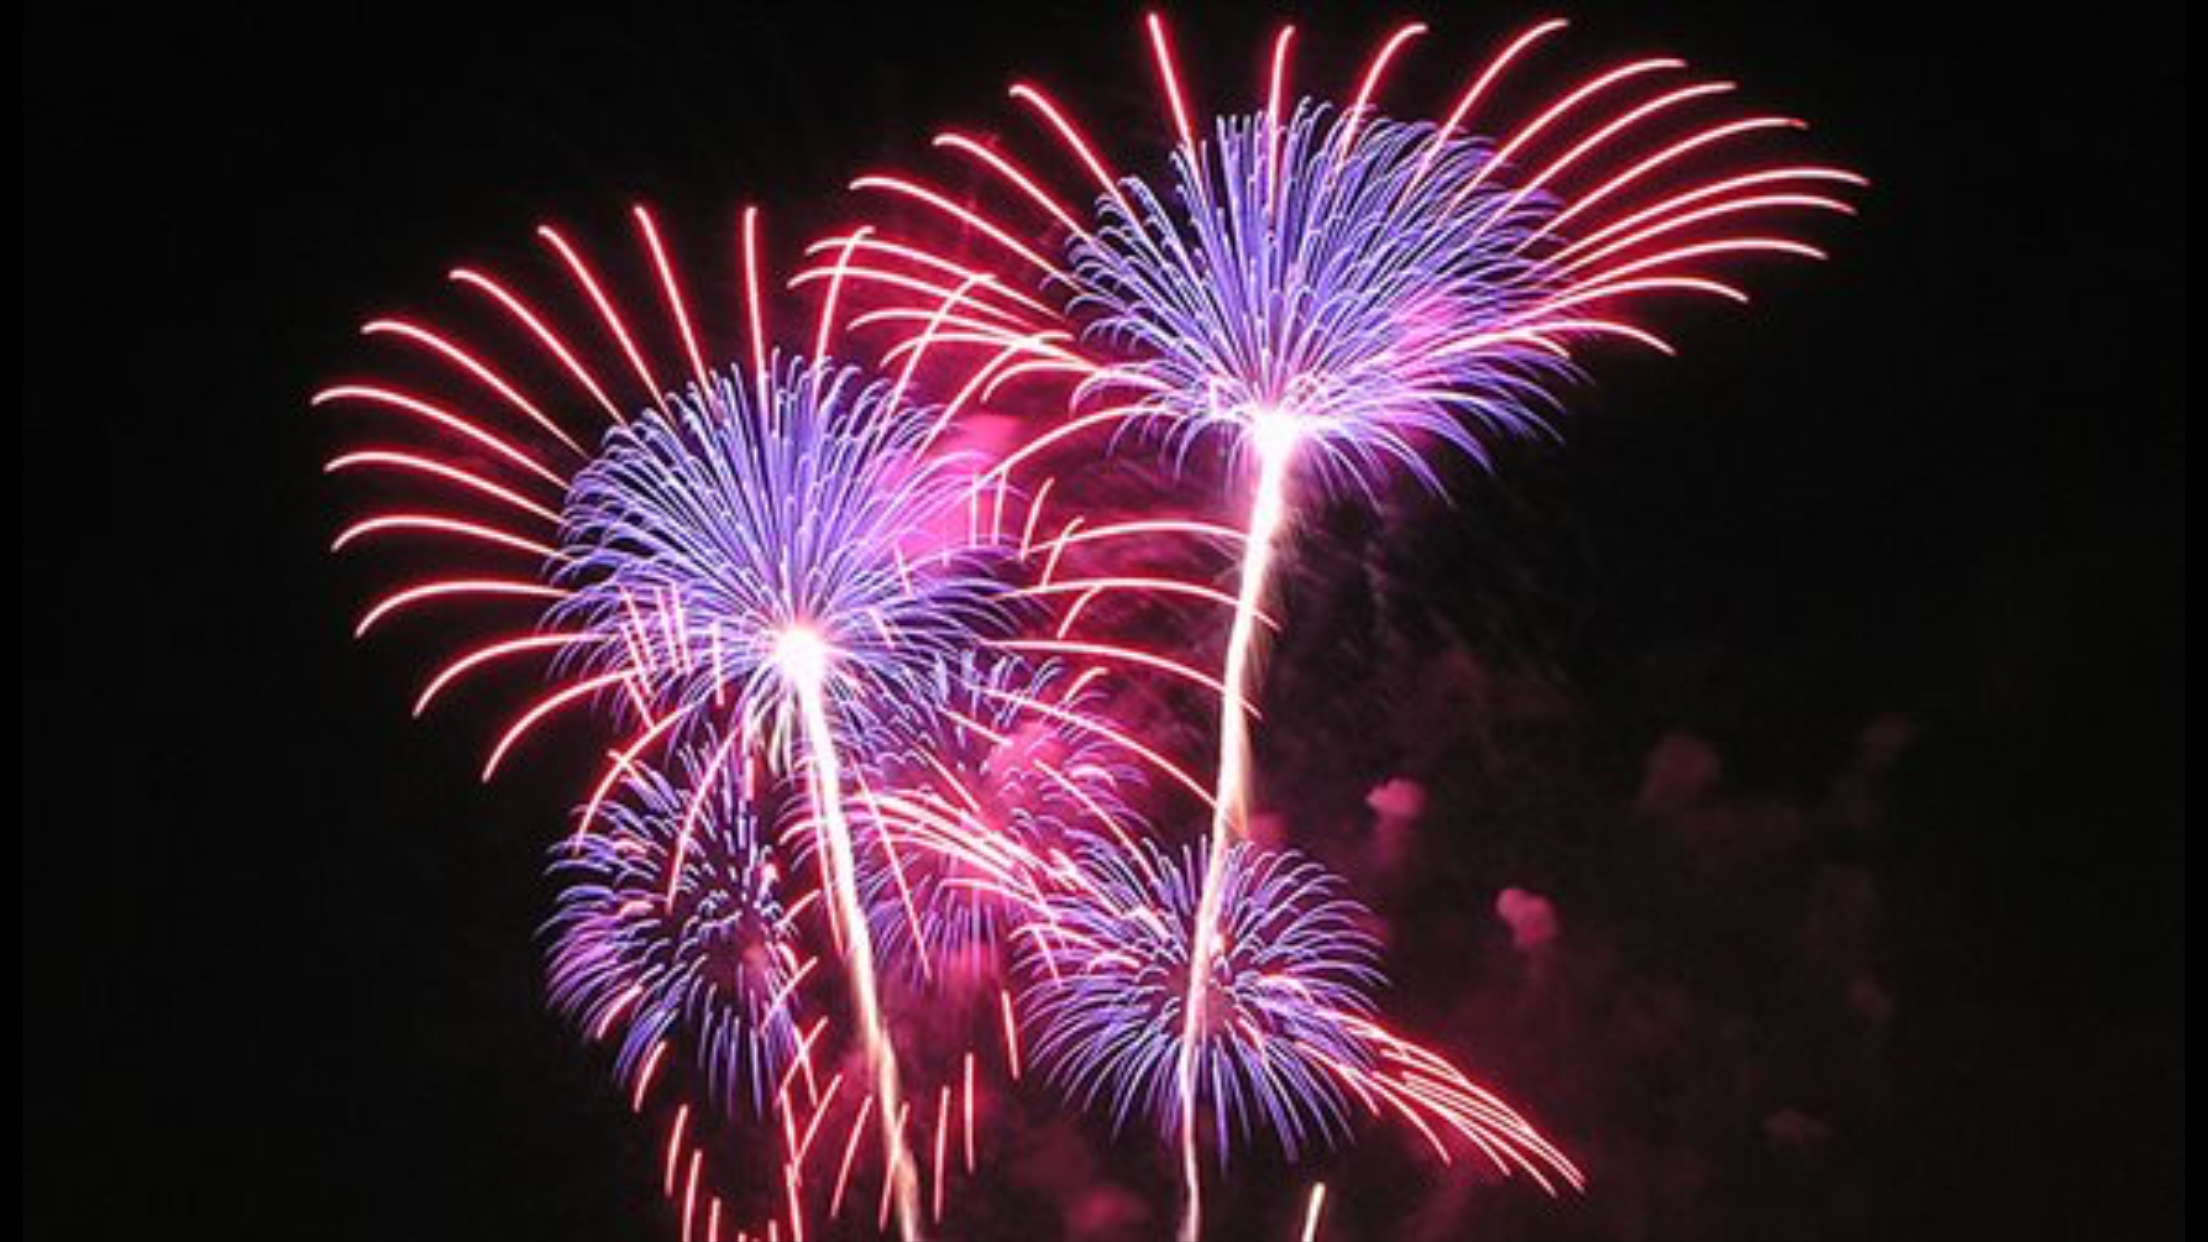 Hope your New Year's starts with a bang!